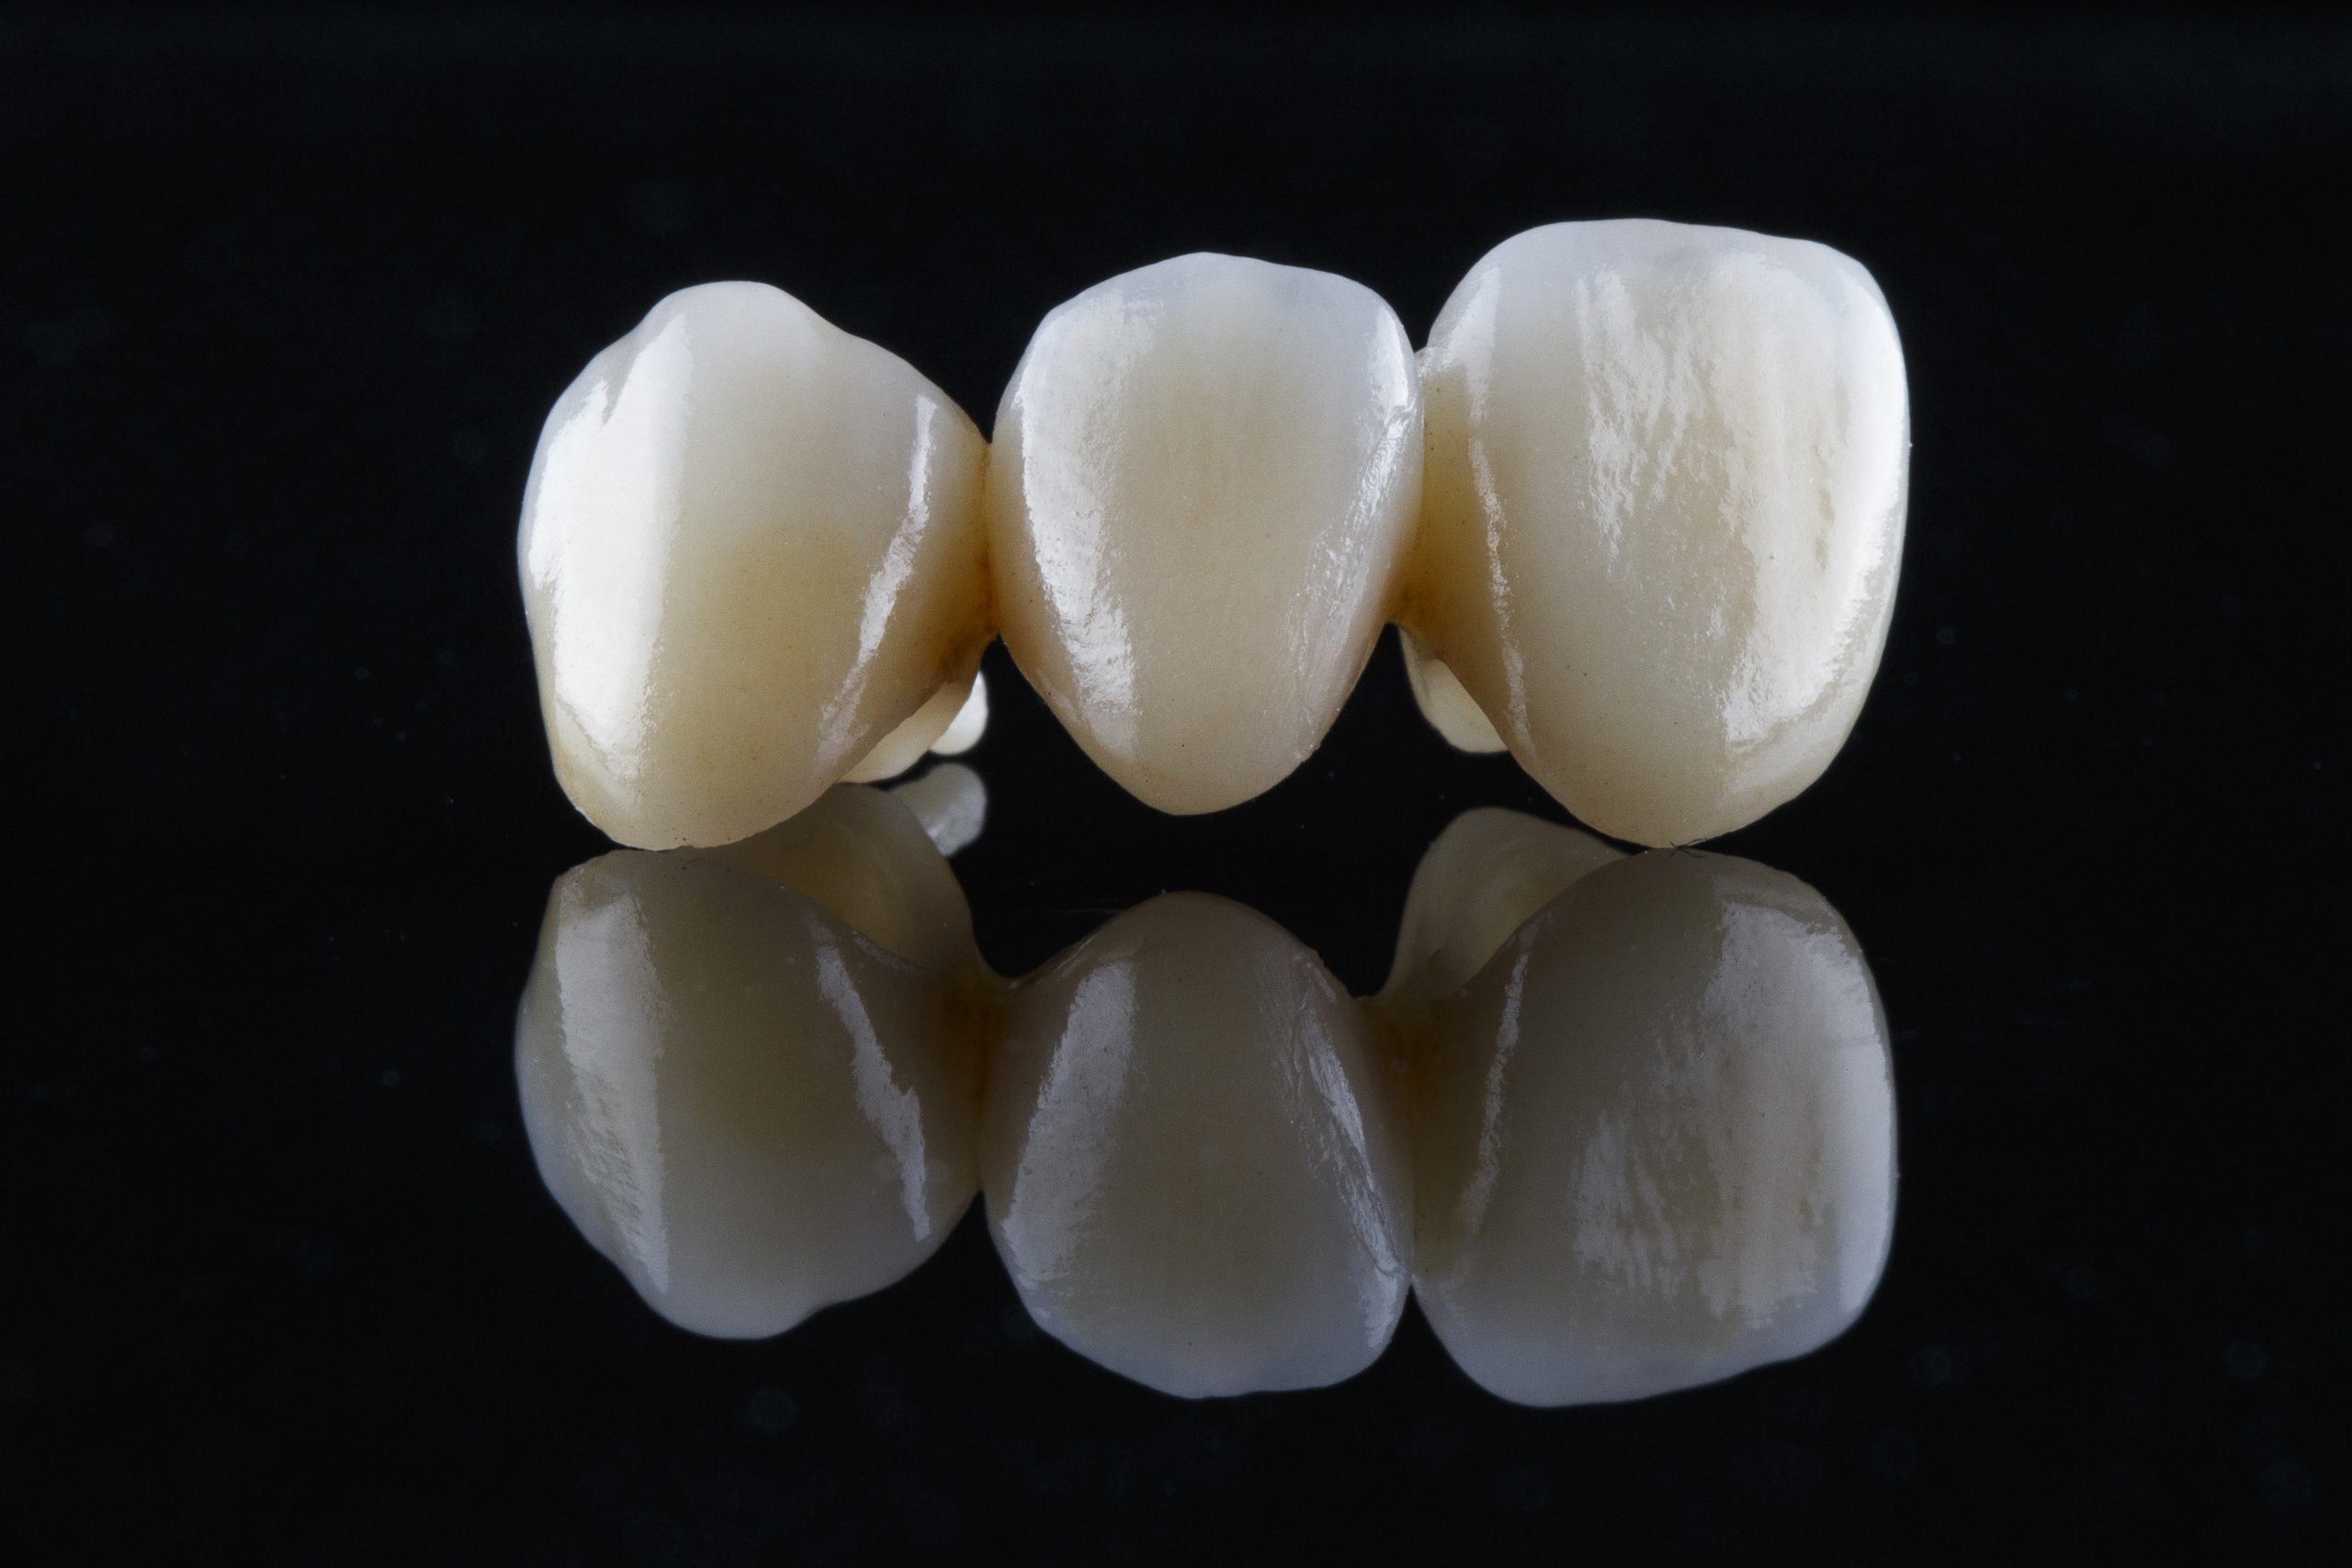 three beautiful dental crowns of natural color on black glass with reflection